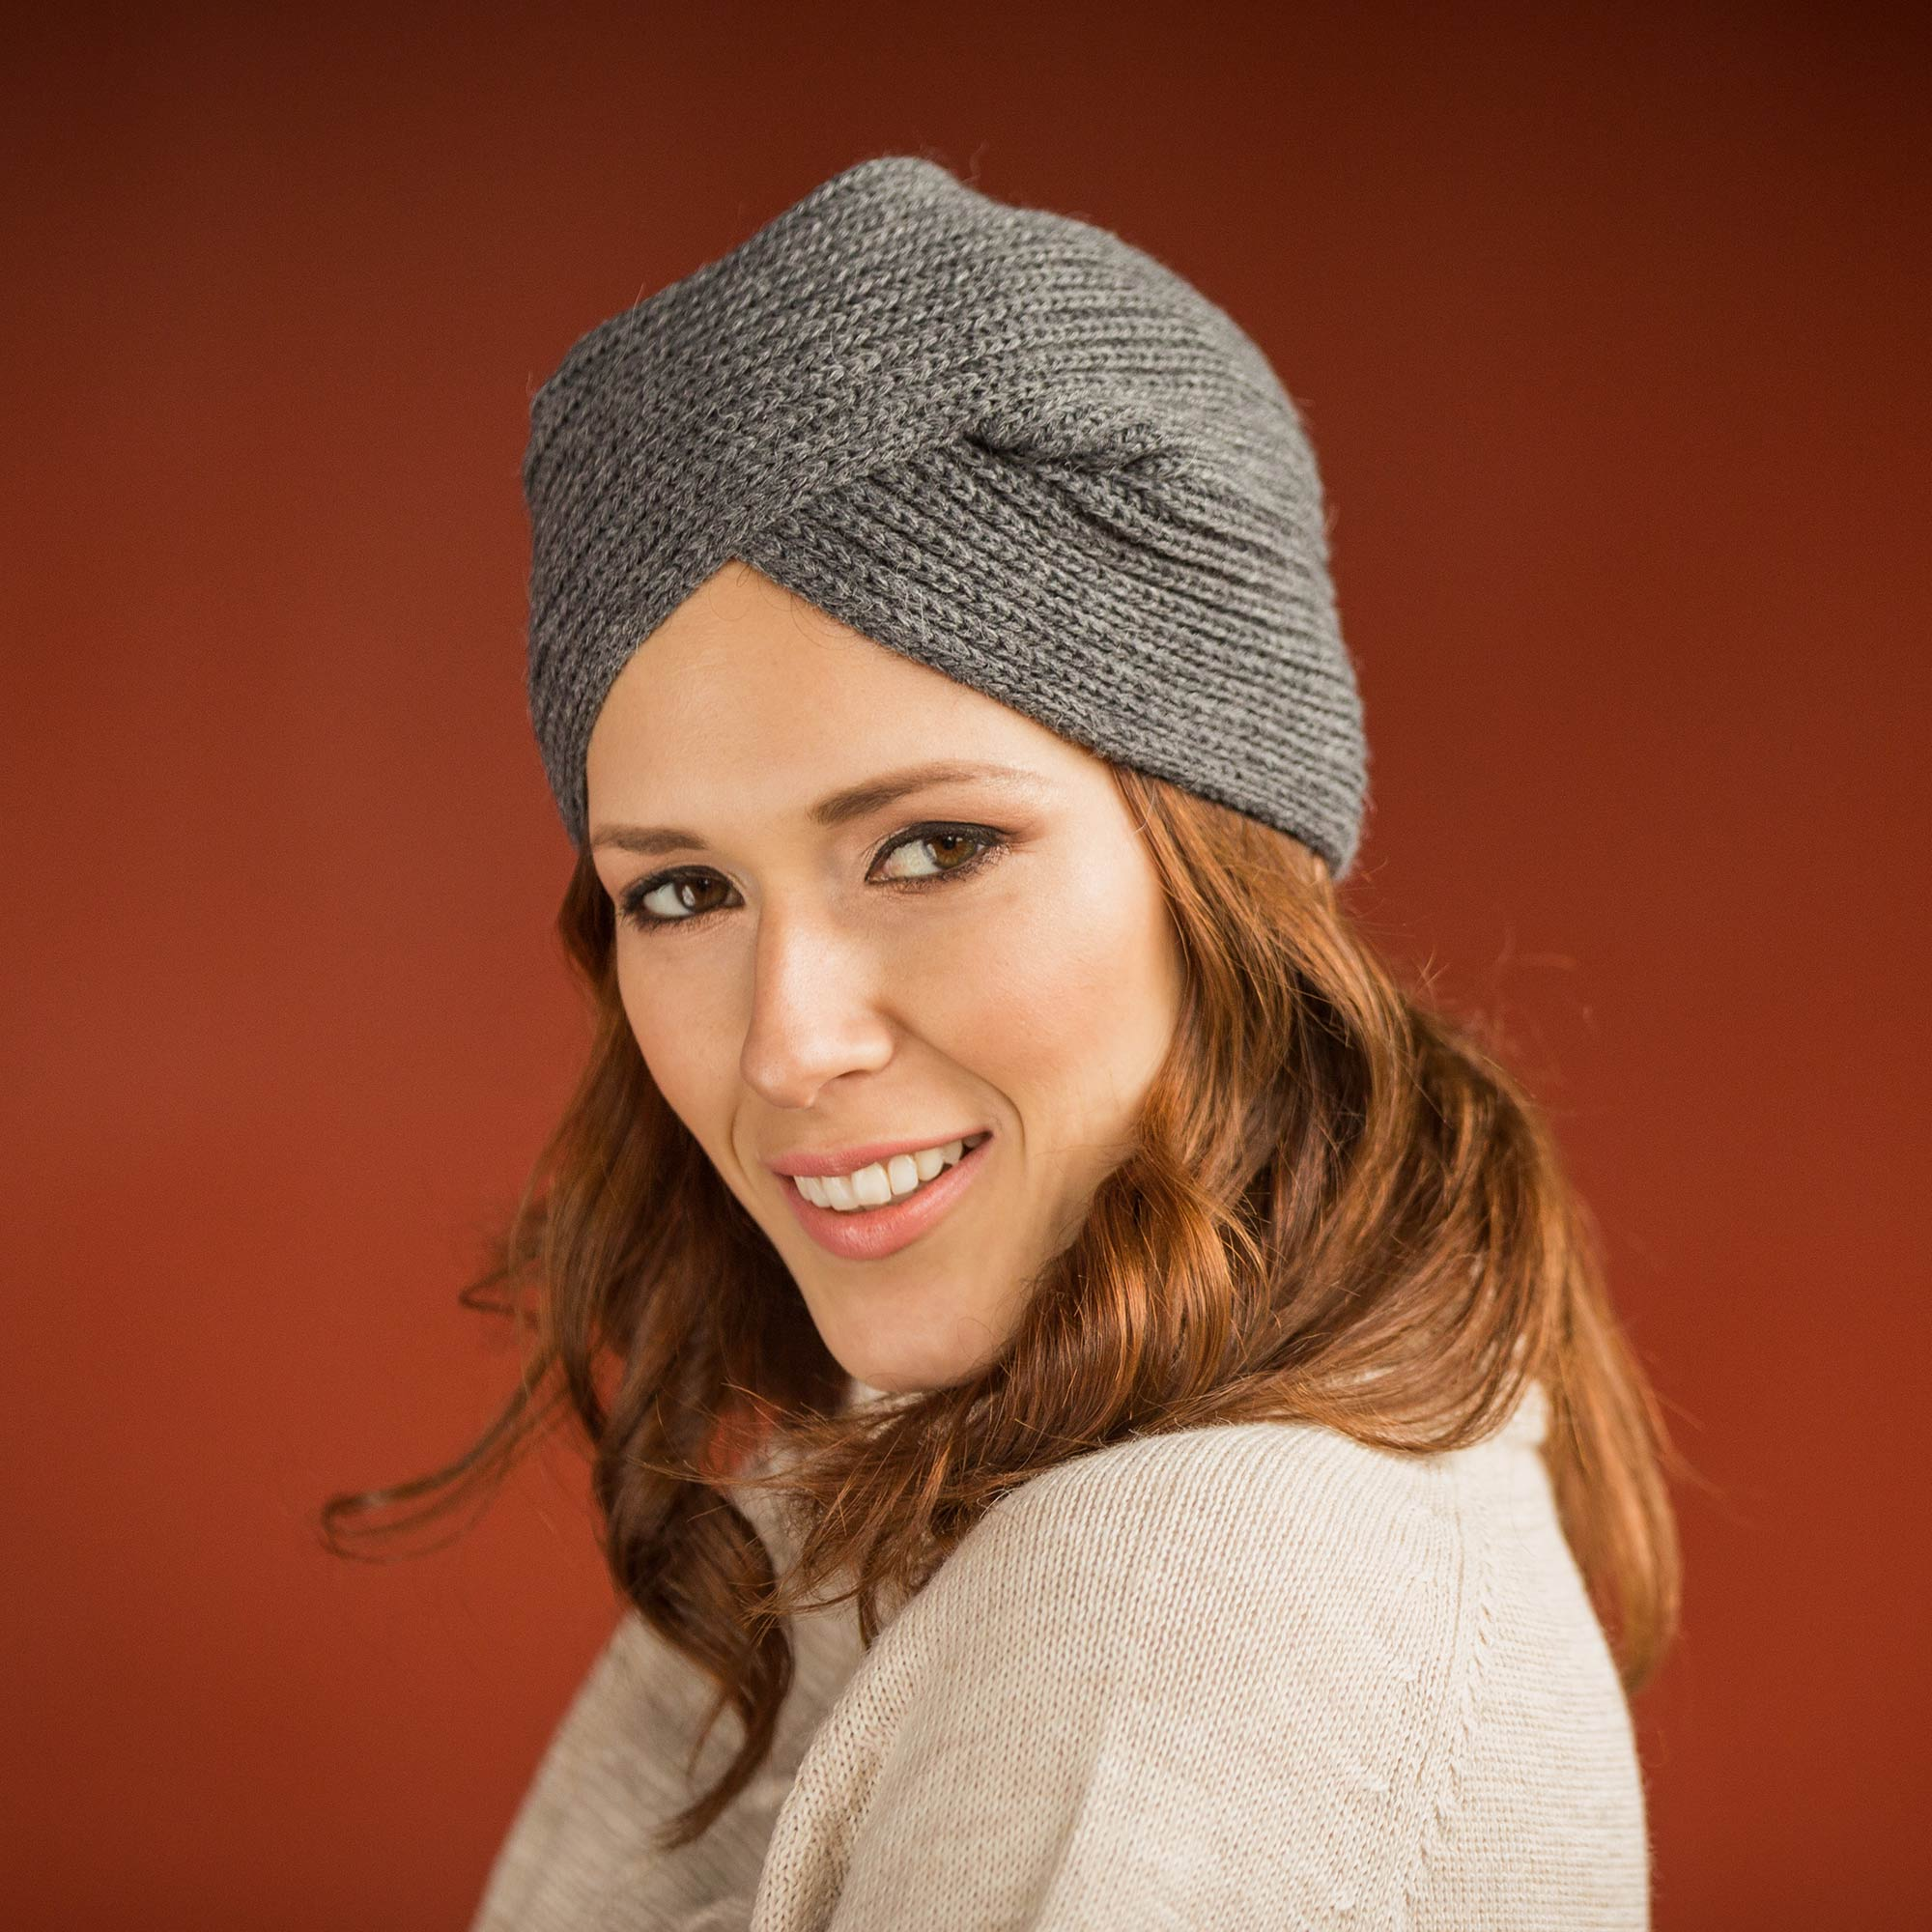 Grey Turban Knitted Grey Alpaca Blend Turban Style Hat from Peru Look Cool and Stay Warm Stylish & Practical Winter Accessories